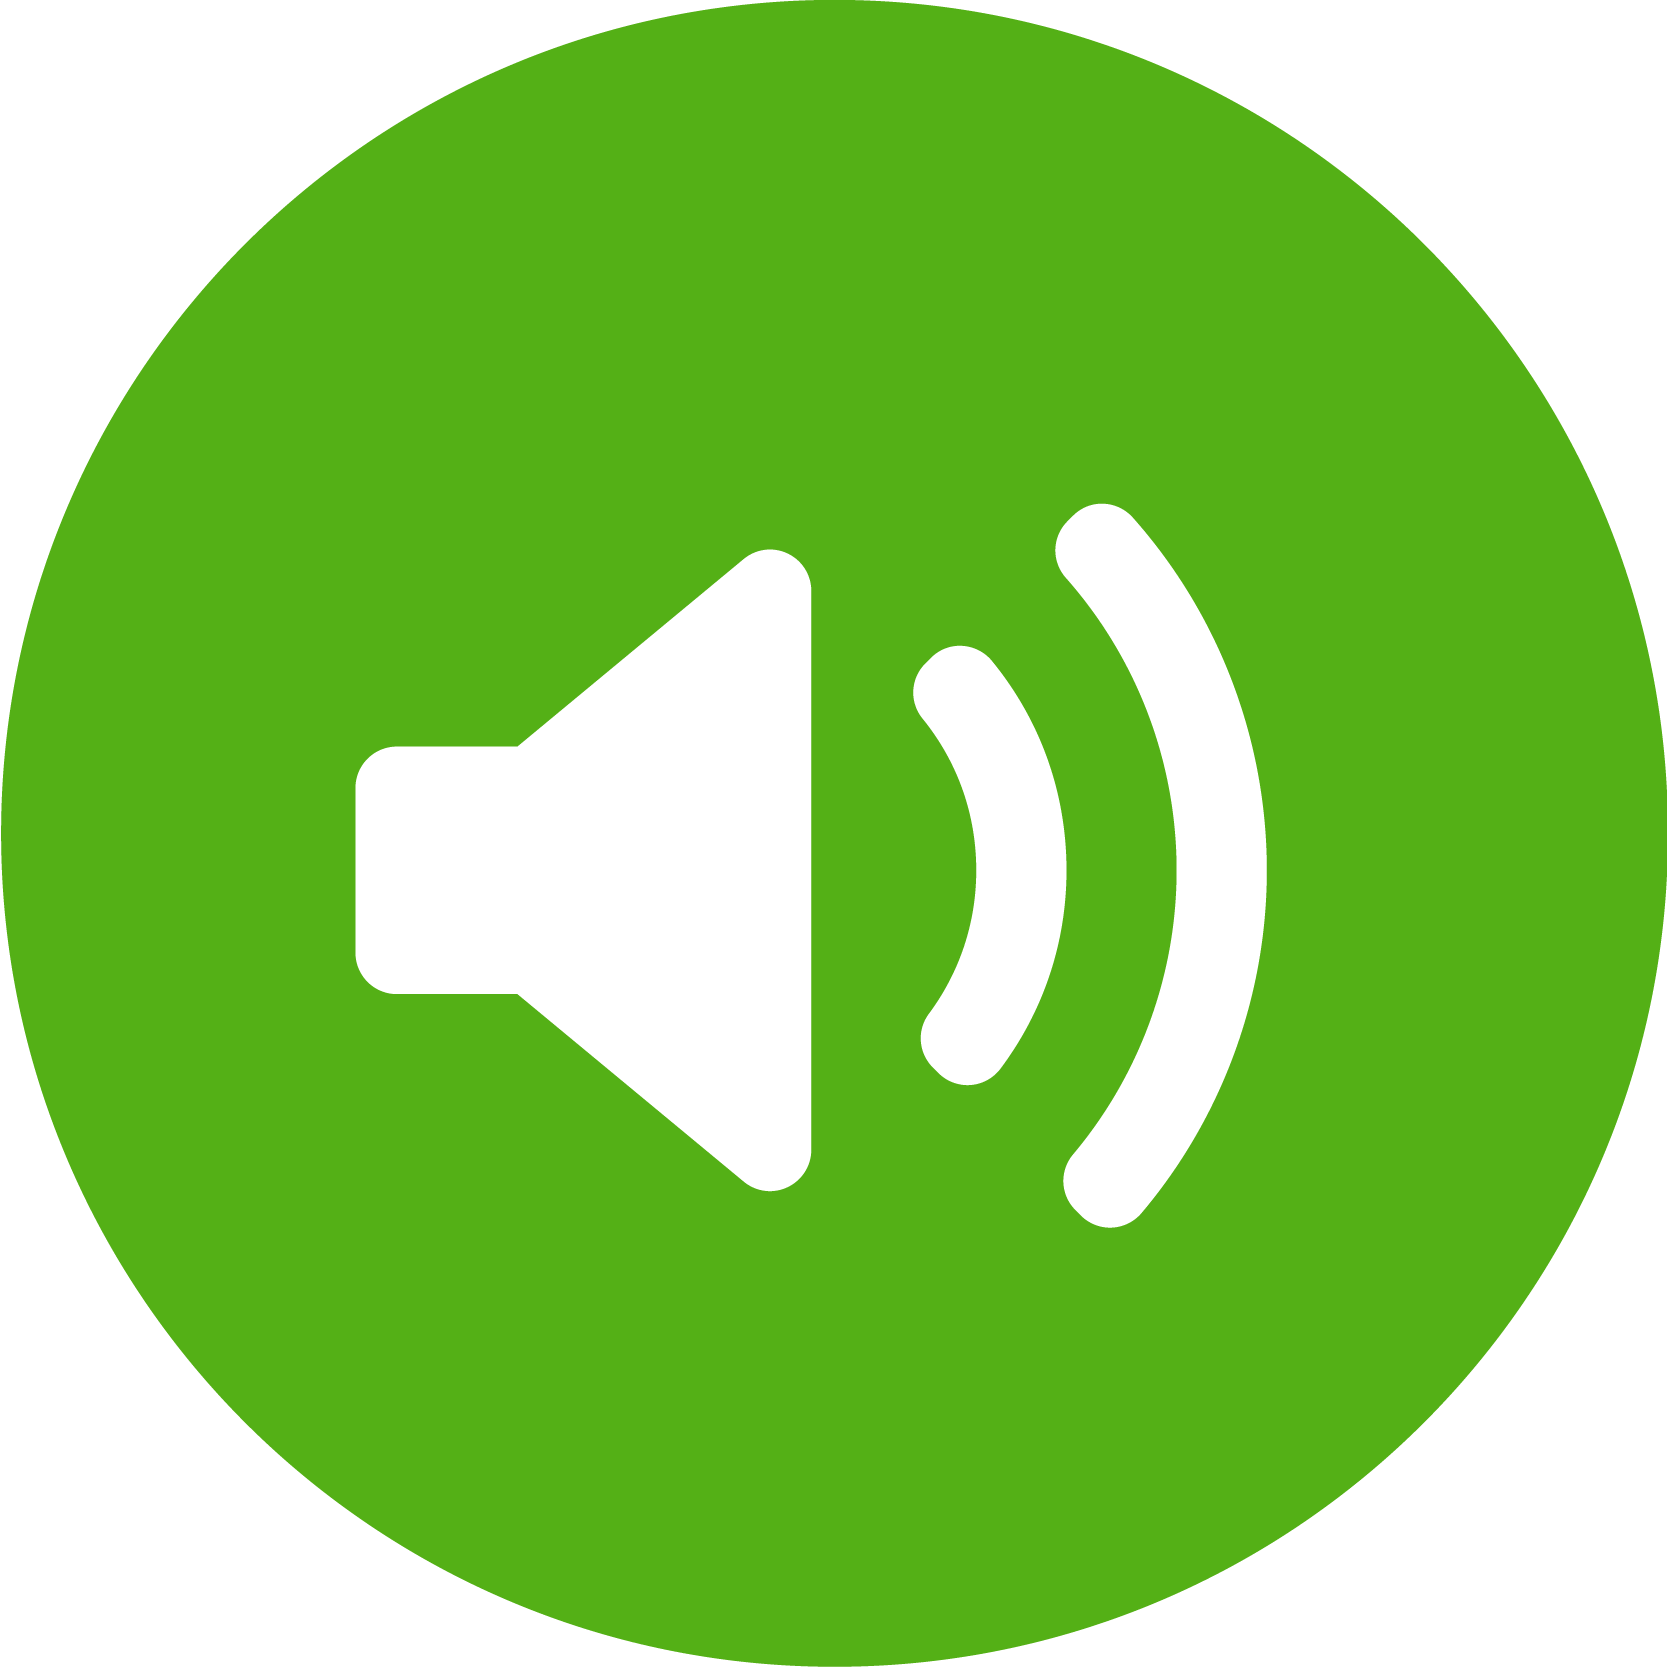 audio-icon-user-andromedavadum1.png